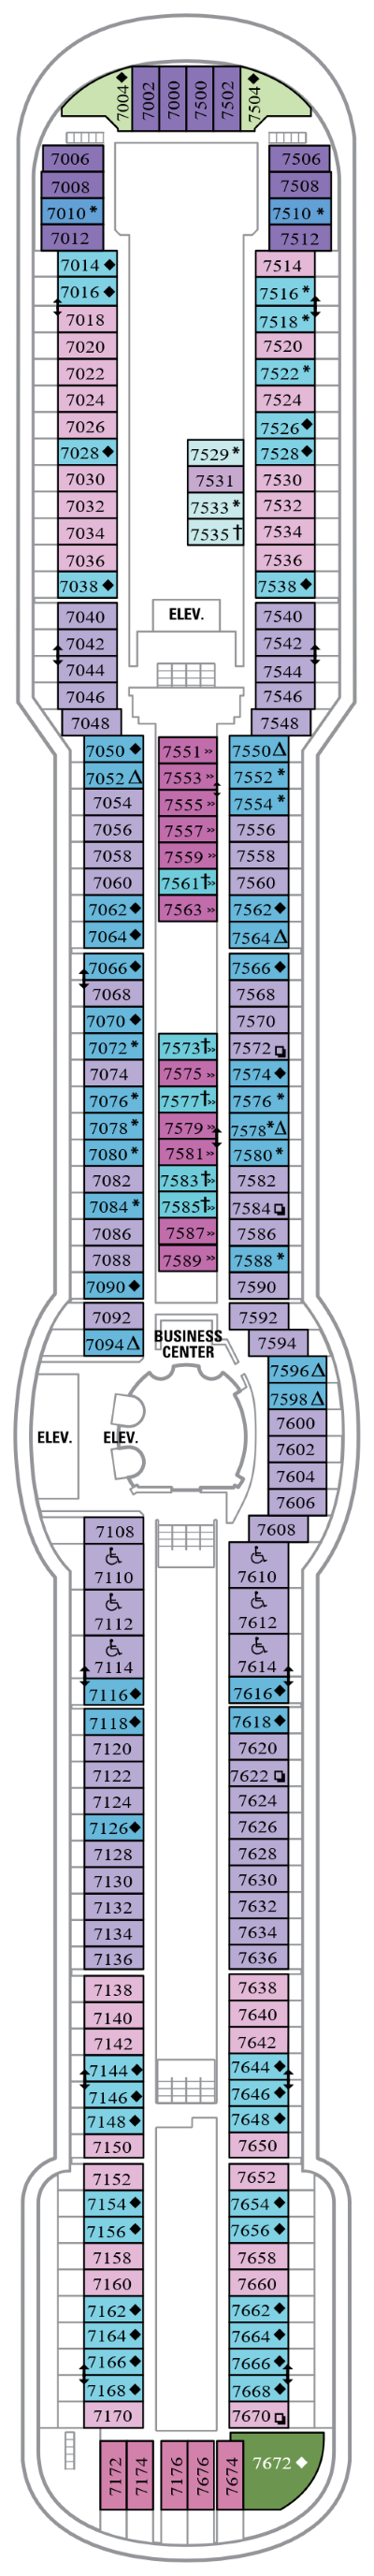 Jewel Of The Seas Deck 7 layout